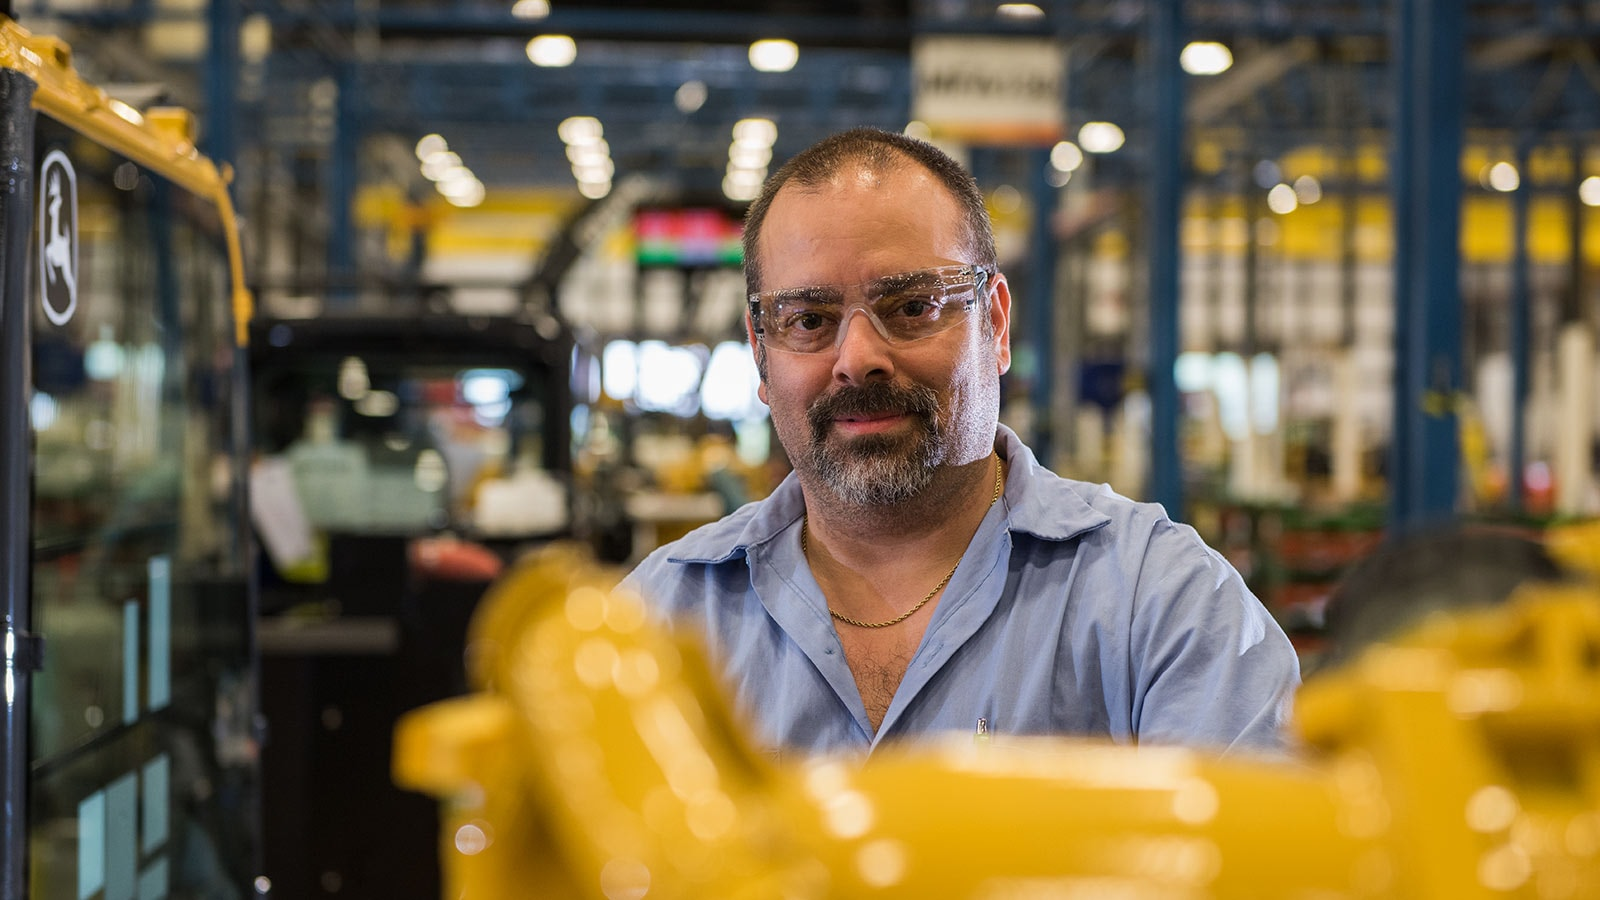 Sammy Flynt, Assembly Lead Technician, shown working in the Deere-Hitachi factory